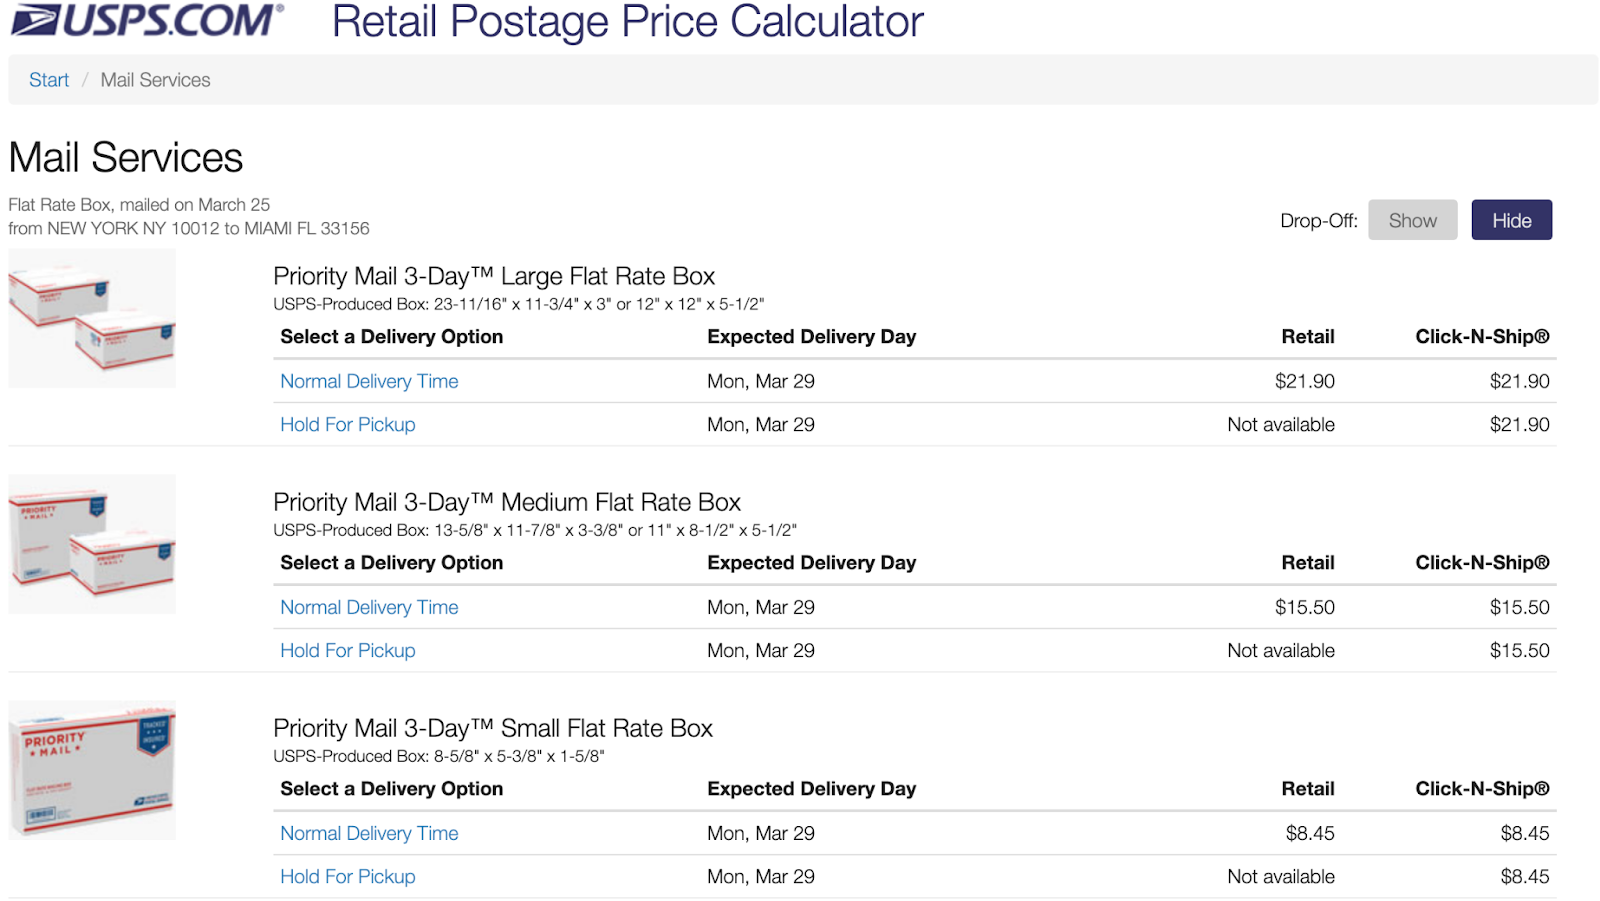 USPS Retail Postage Price Calculator